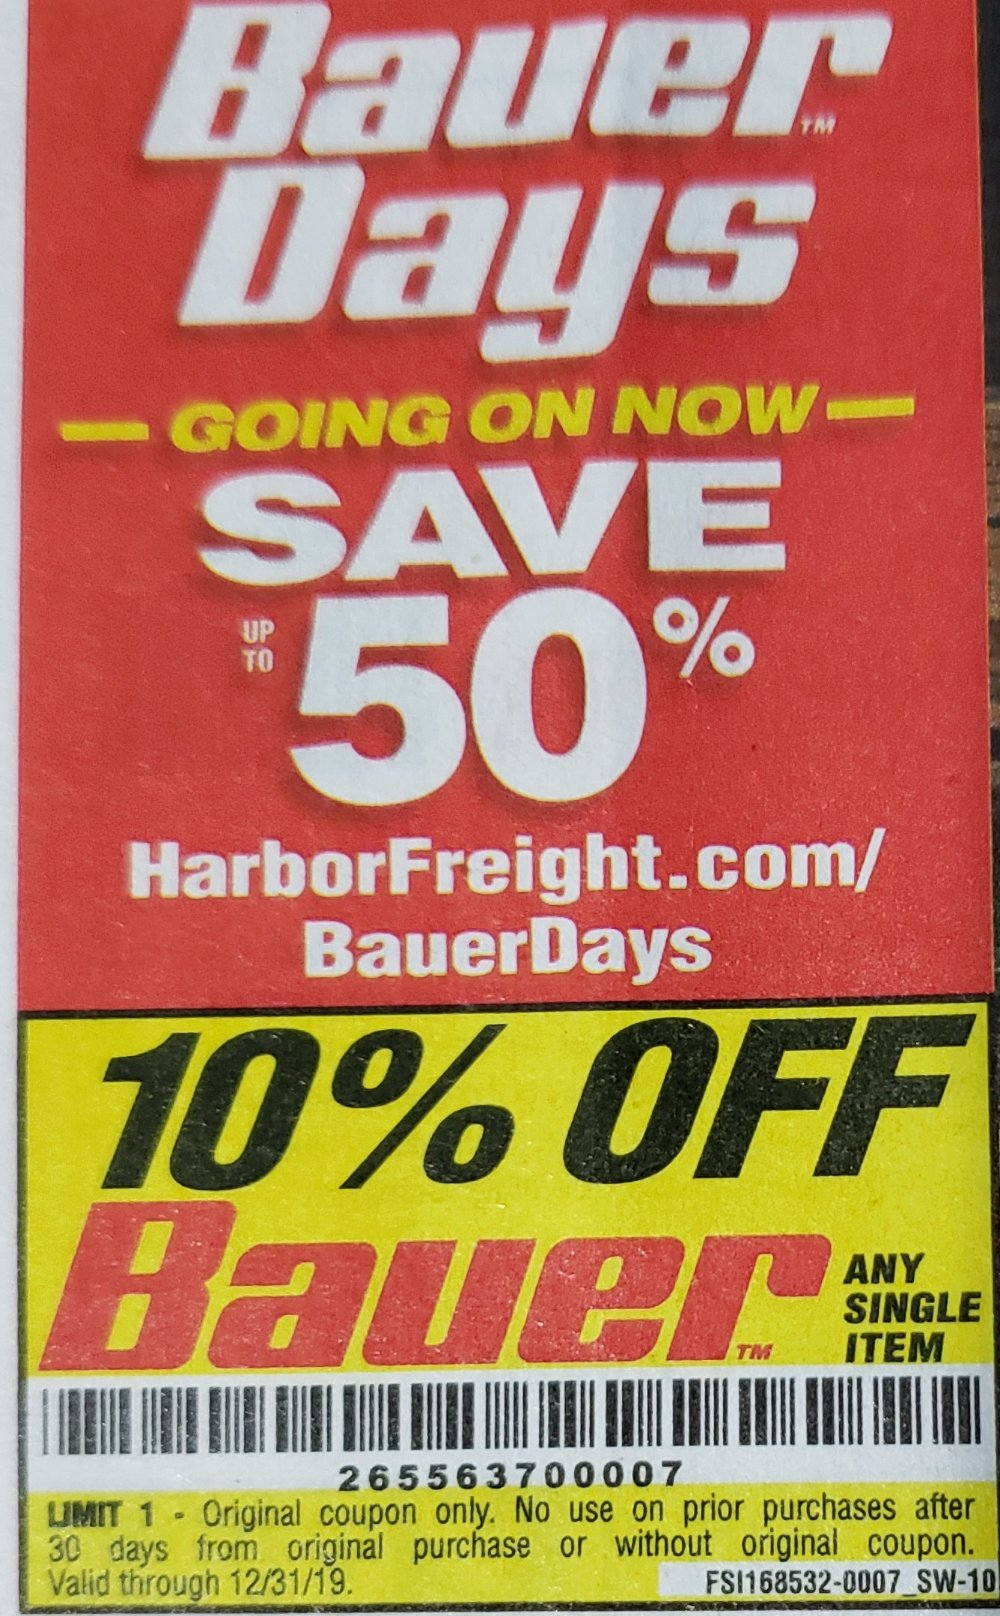 Harbor Freight Coupon, HF Coupons - 10% off for any Bauer product